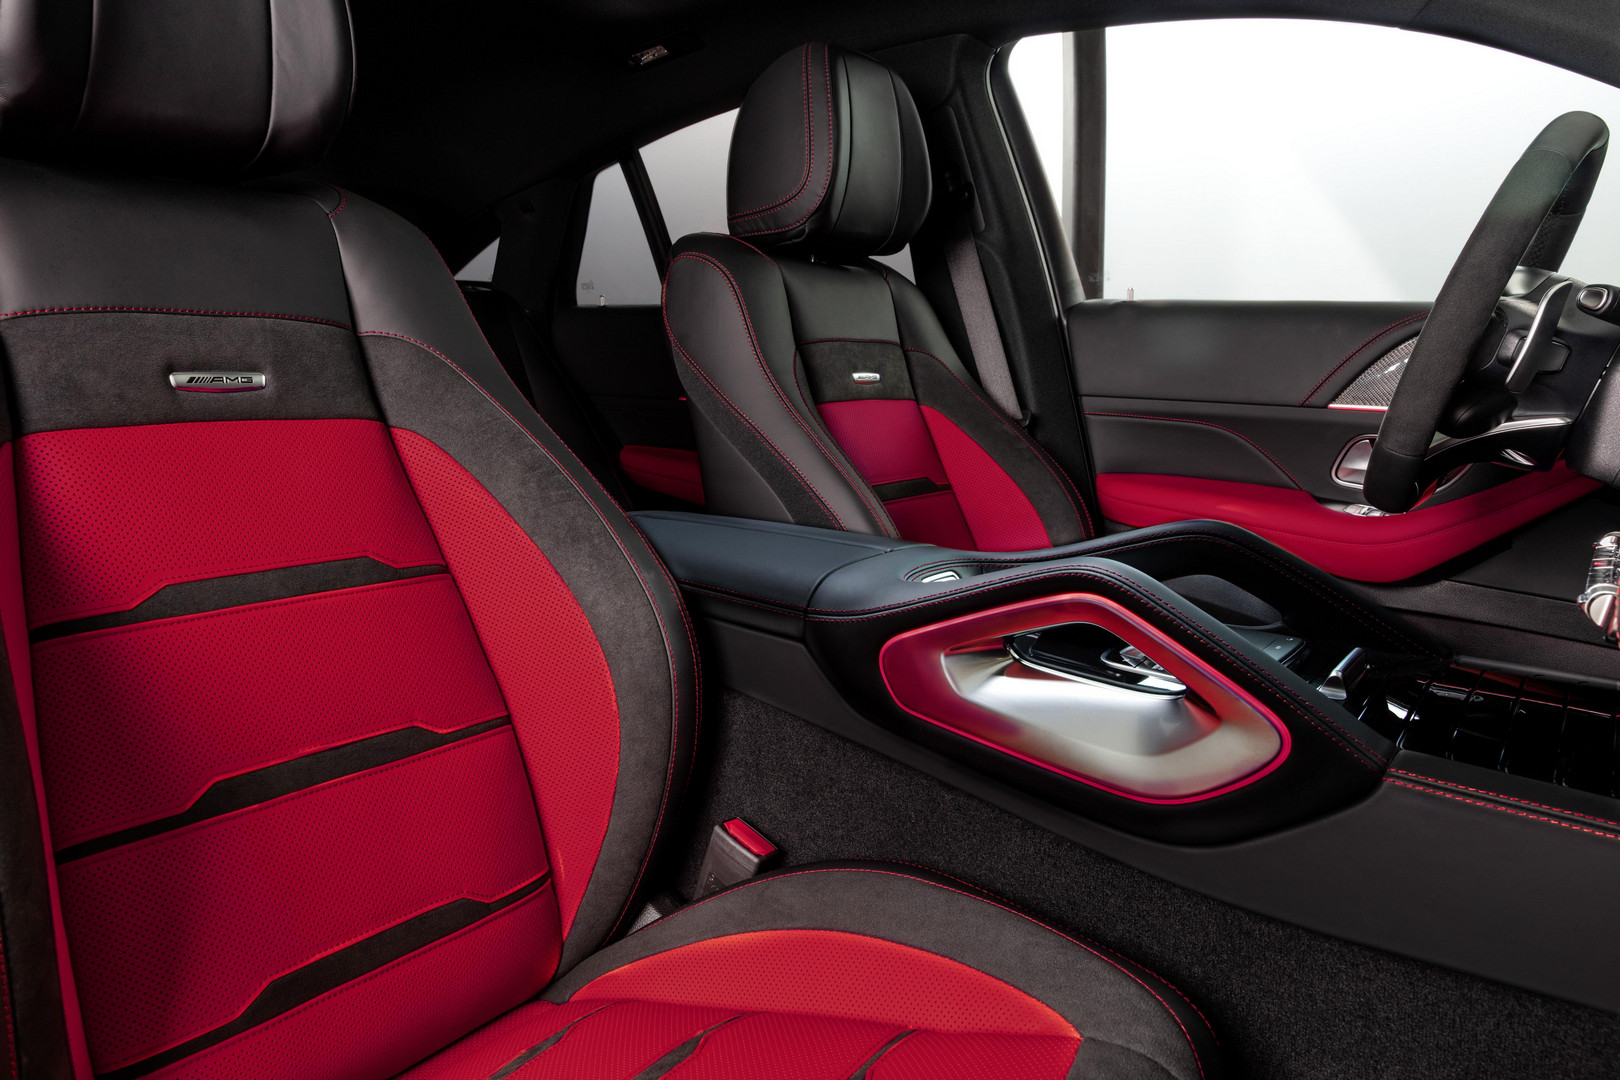 Mercedes-AMG GLE 53 Coupe Seats